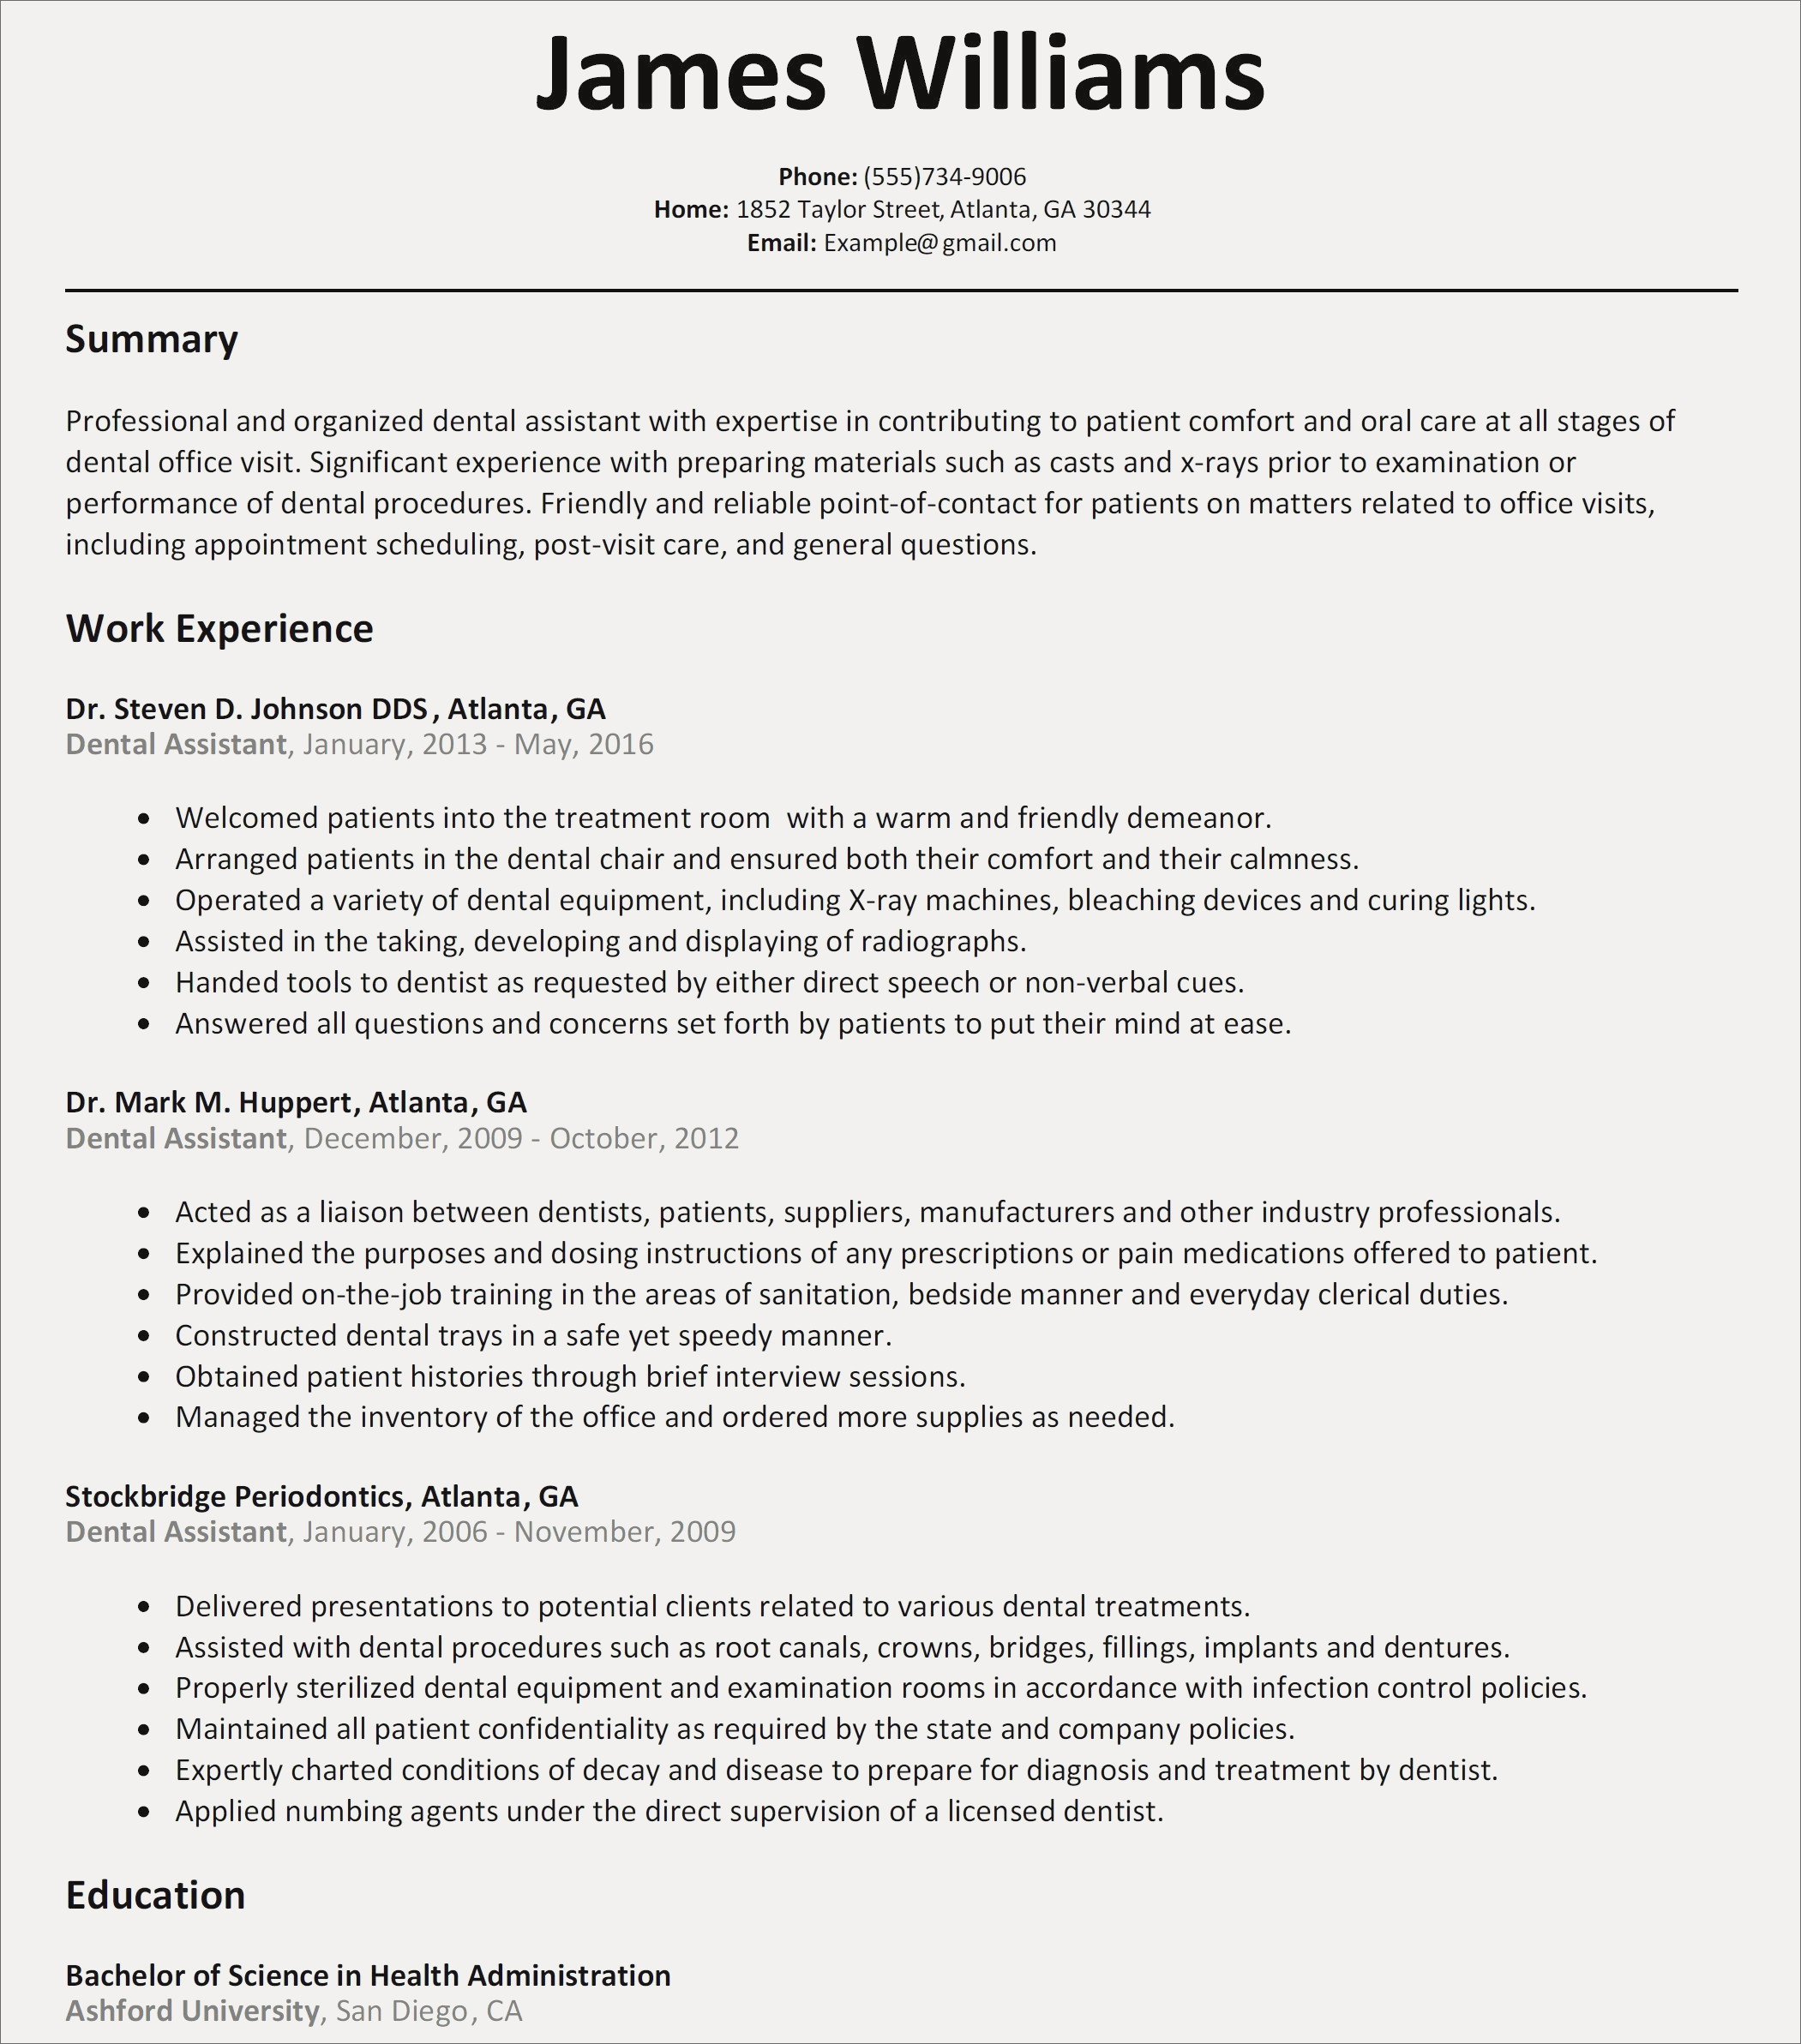 Resume for Financial Analyst - How to Make A Resume Cove Best How to Write A Cover Letter for